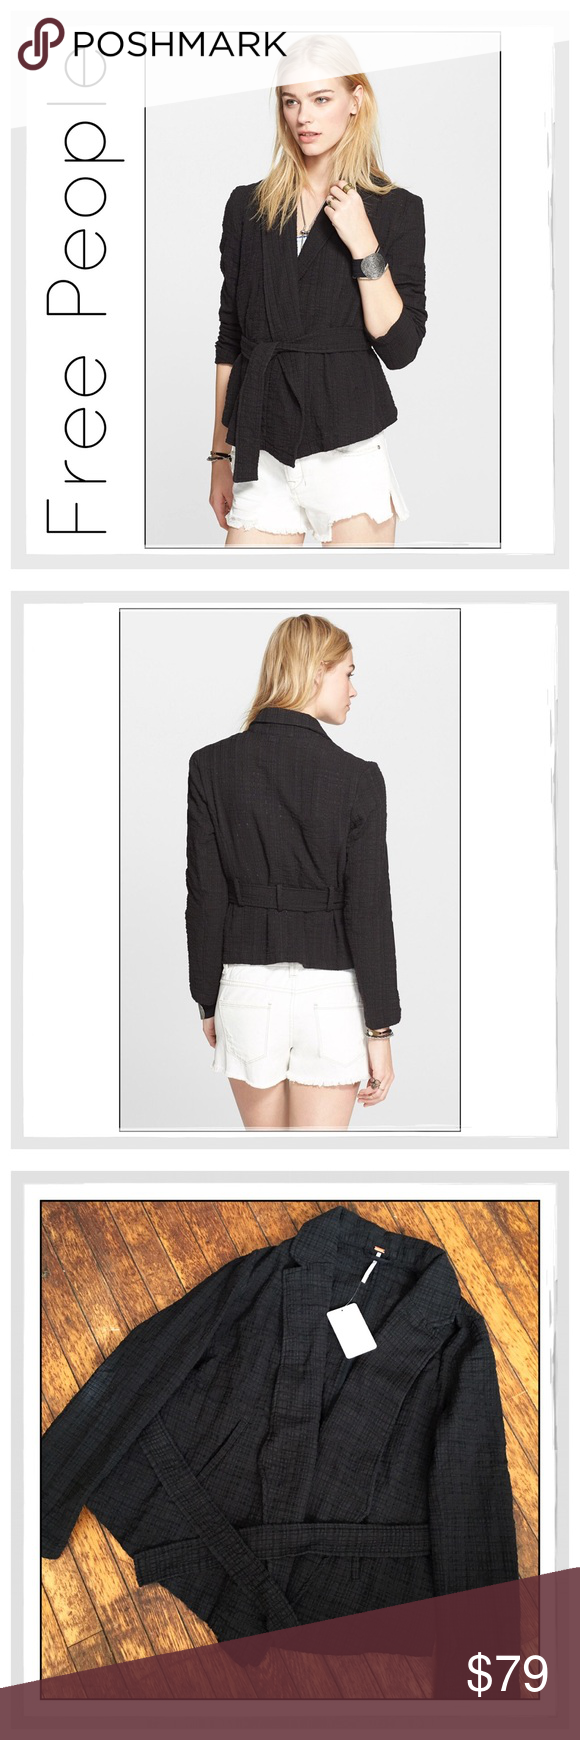 ✨Free People Gauze Wrap Jacket✨ ✨Free People Gauze Wrap Slouchy Jacket✨A classic blazer fused with a belted kimono, this wrap jacket fashioned from a gauzy blend of stretch-knit combed cotton strikes a chic balance between business and casual✨Hand Pockets With Removable Belt✨Front hemline goes down to a point; straight hemline across back✨86% combed cotton, 13% polyamide, 1% spandex✨NWT✨Size Small✨This Jacket Runs Big and also Fits Medium and Petite Large✨ Free People Jackets & Coats…